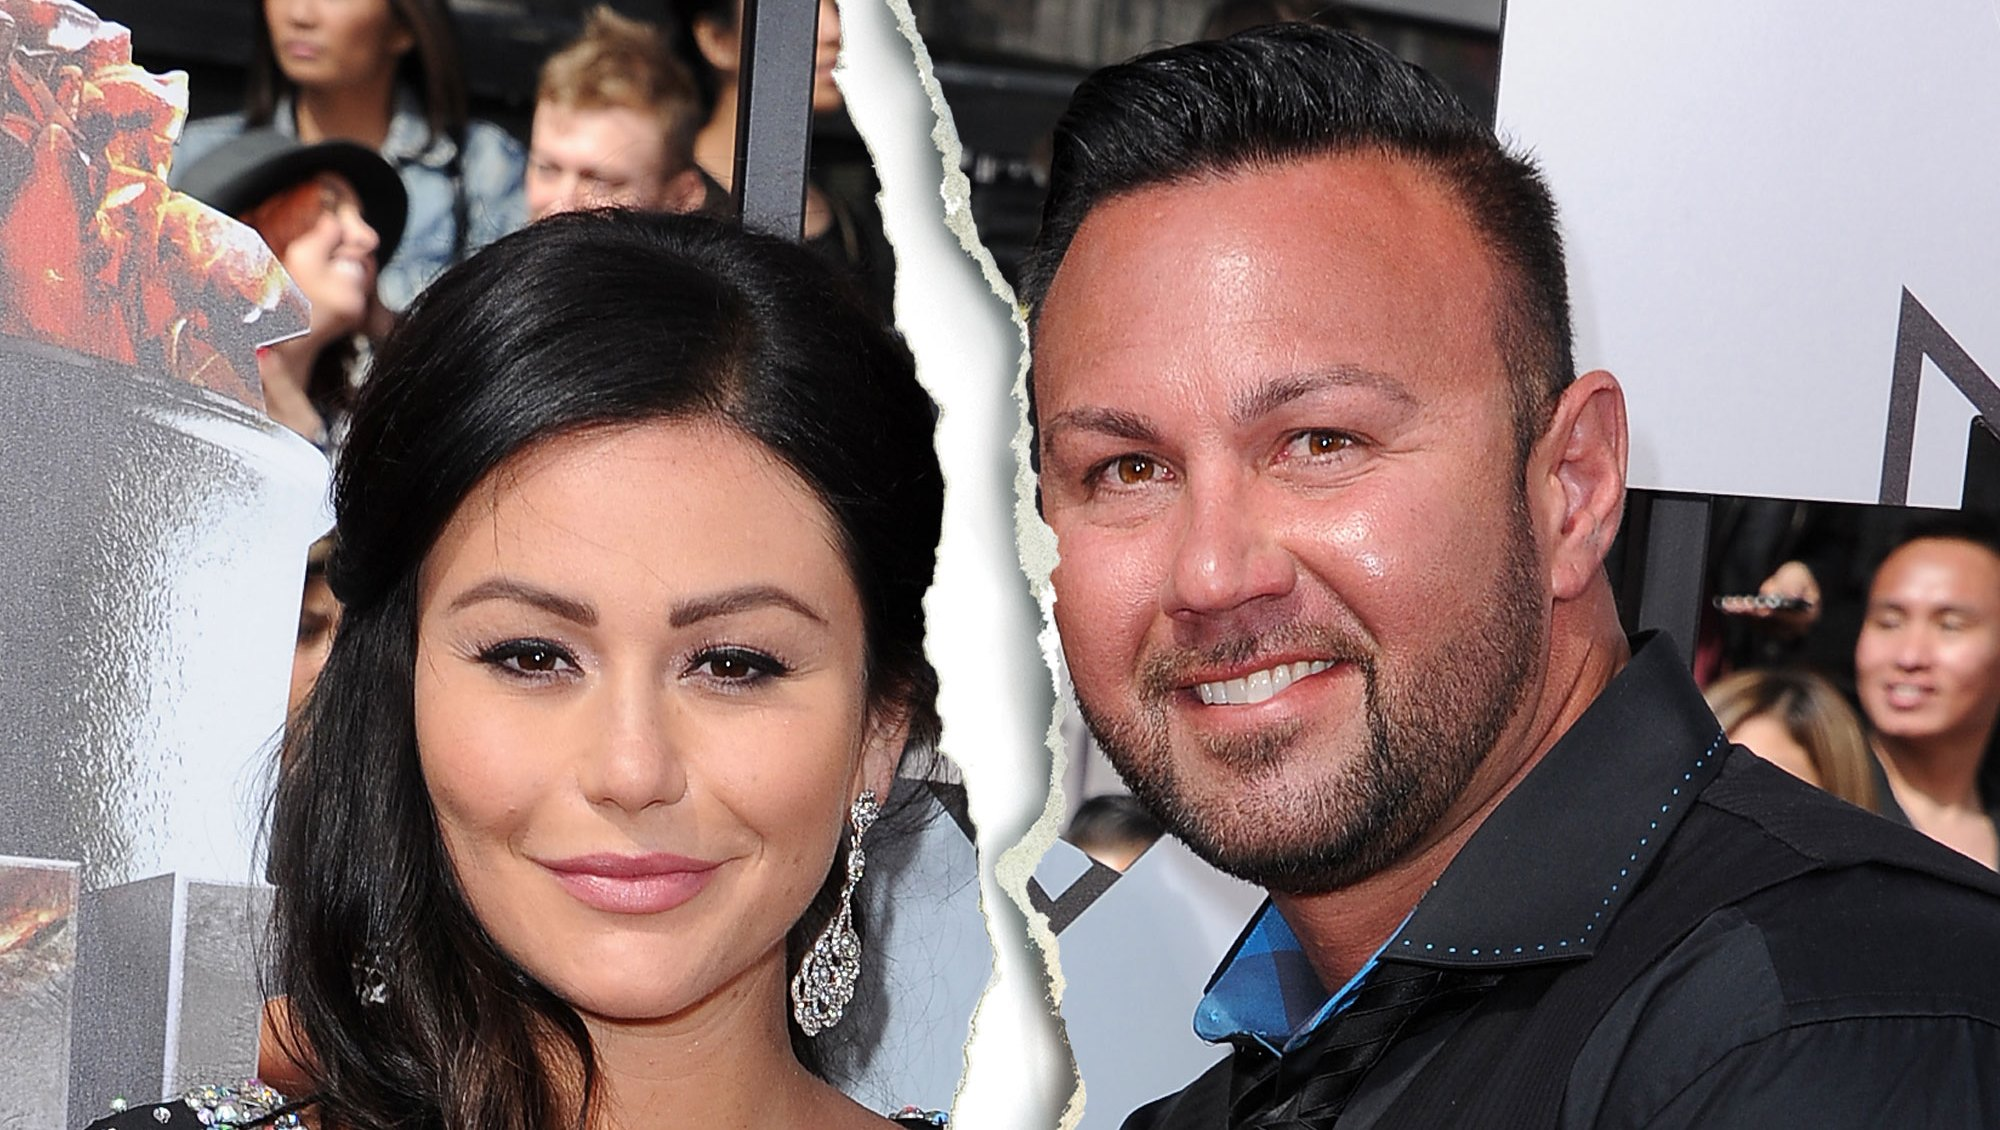 Jenni Farley Files for Divorce from Roger Mathews